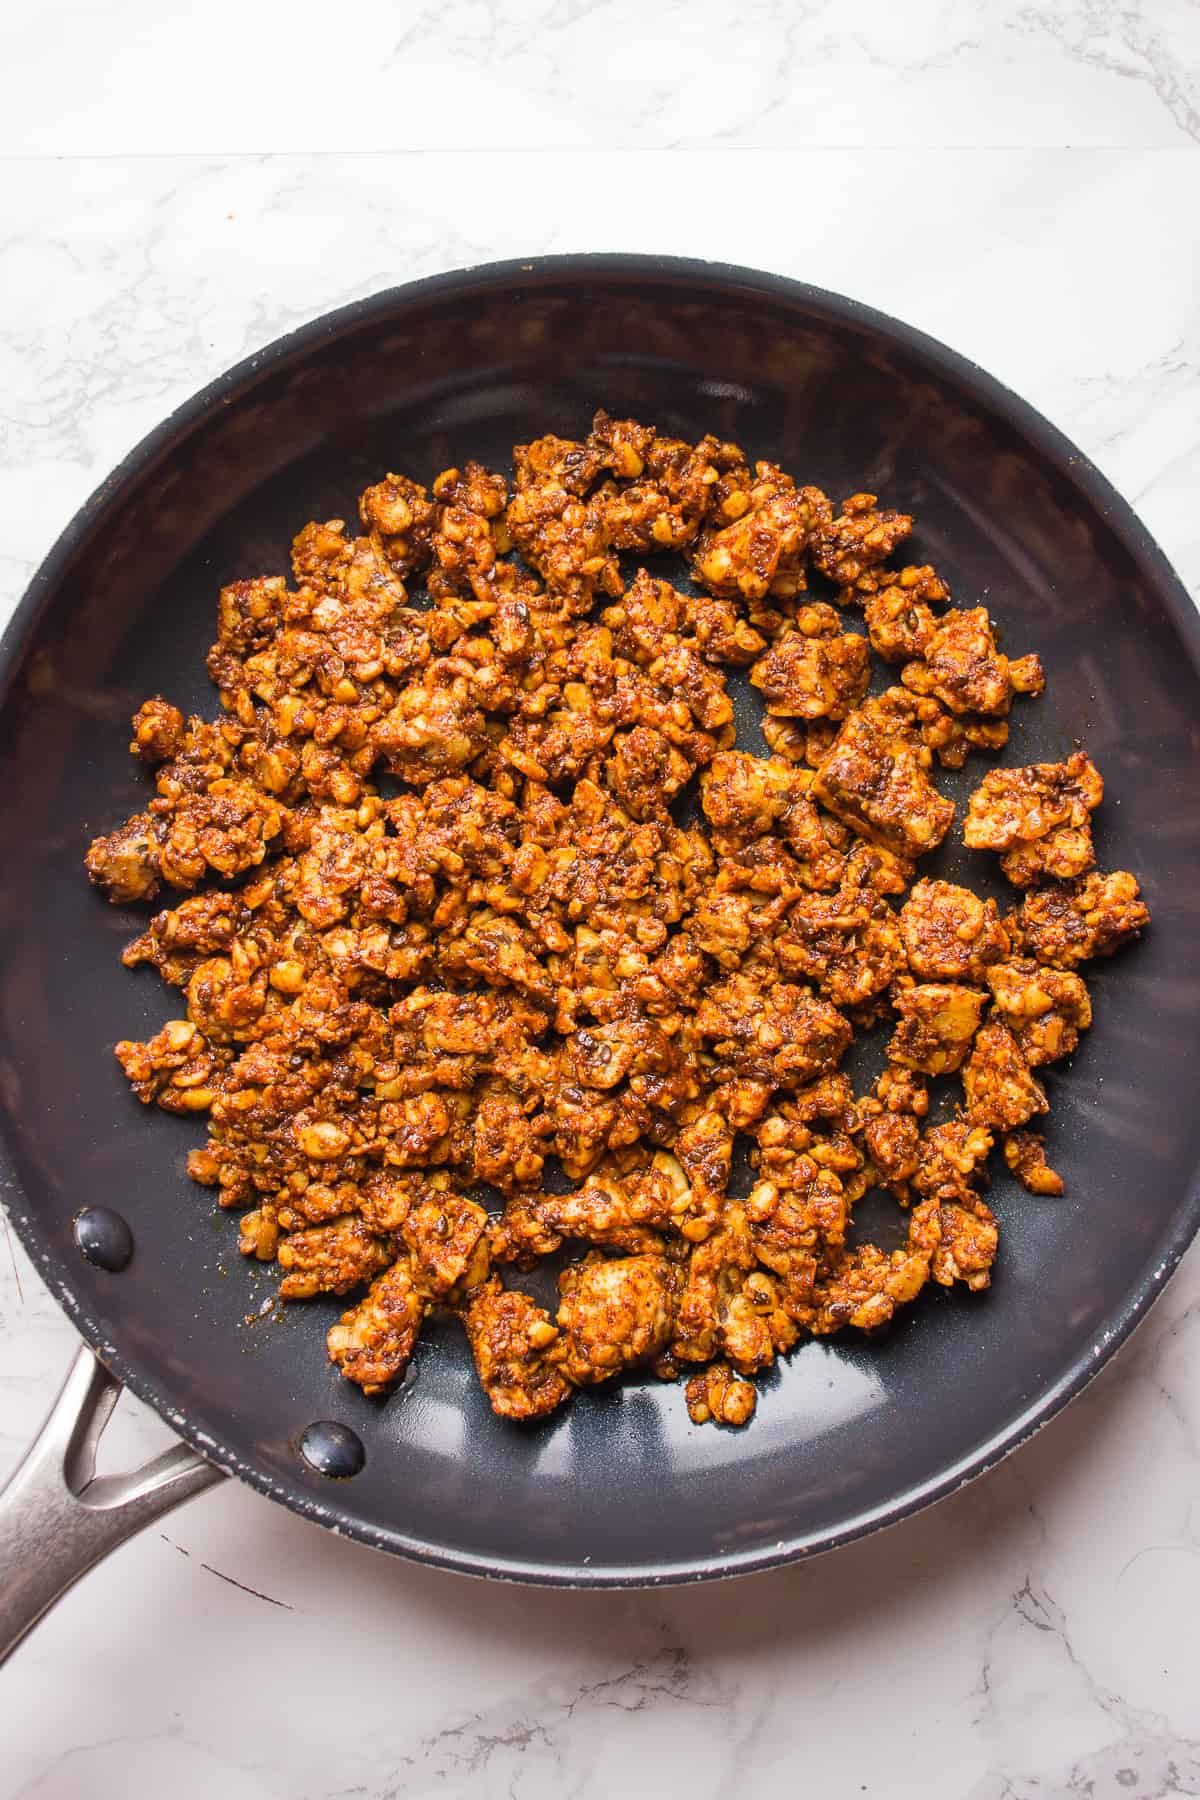 Cooking vegan taco meat in a skillet